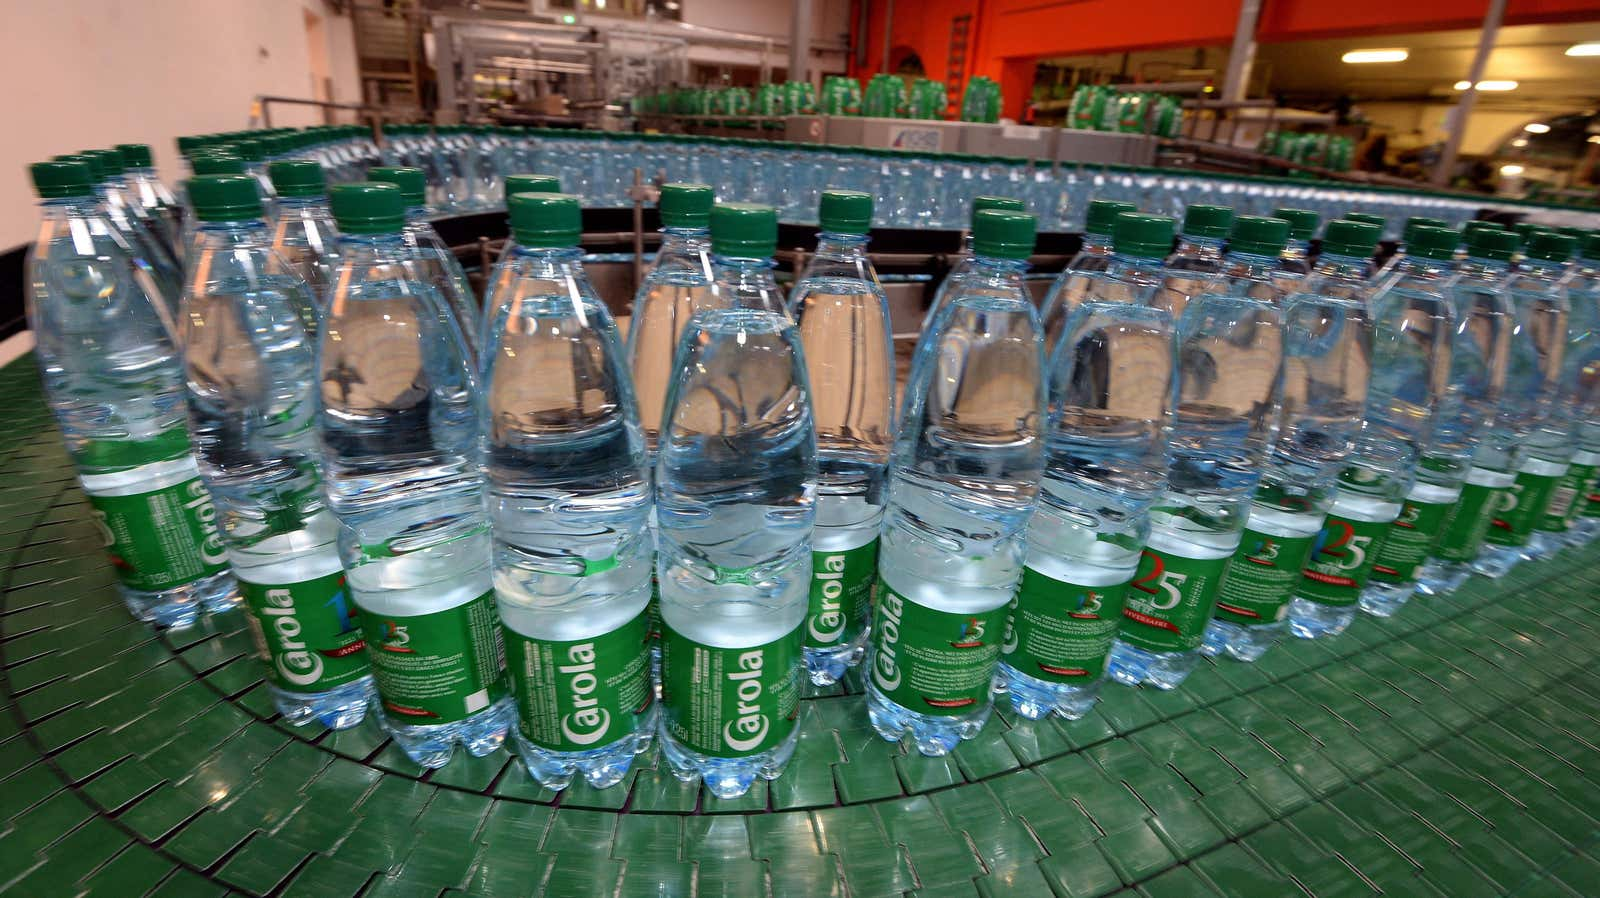 Is Bottled Water Just Tap Water?